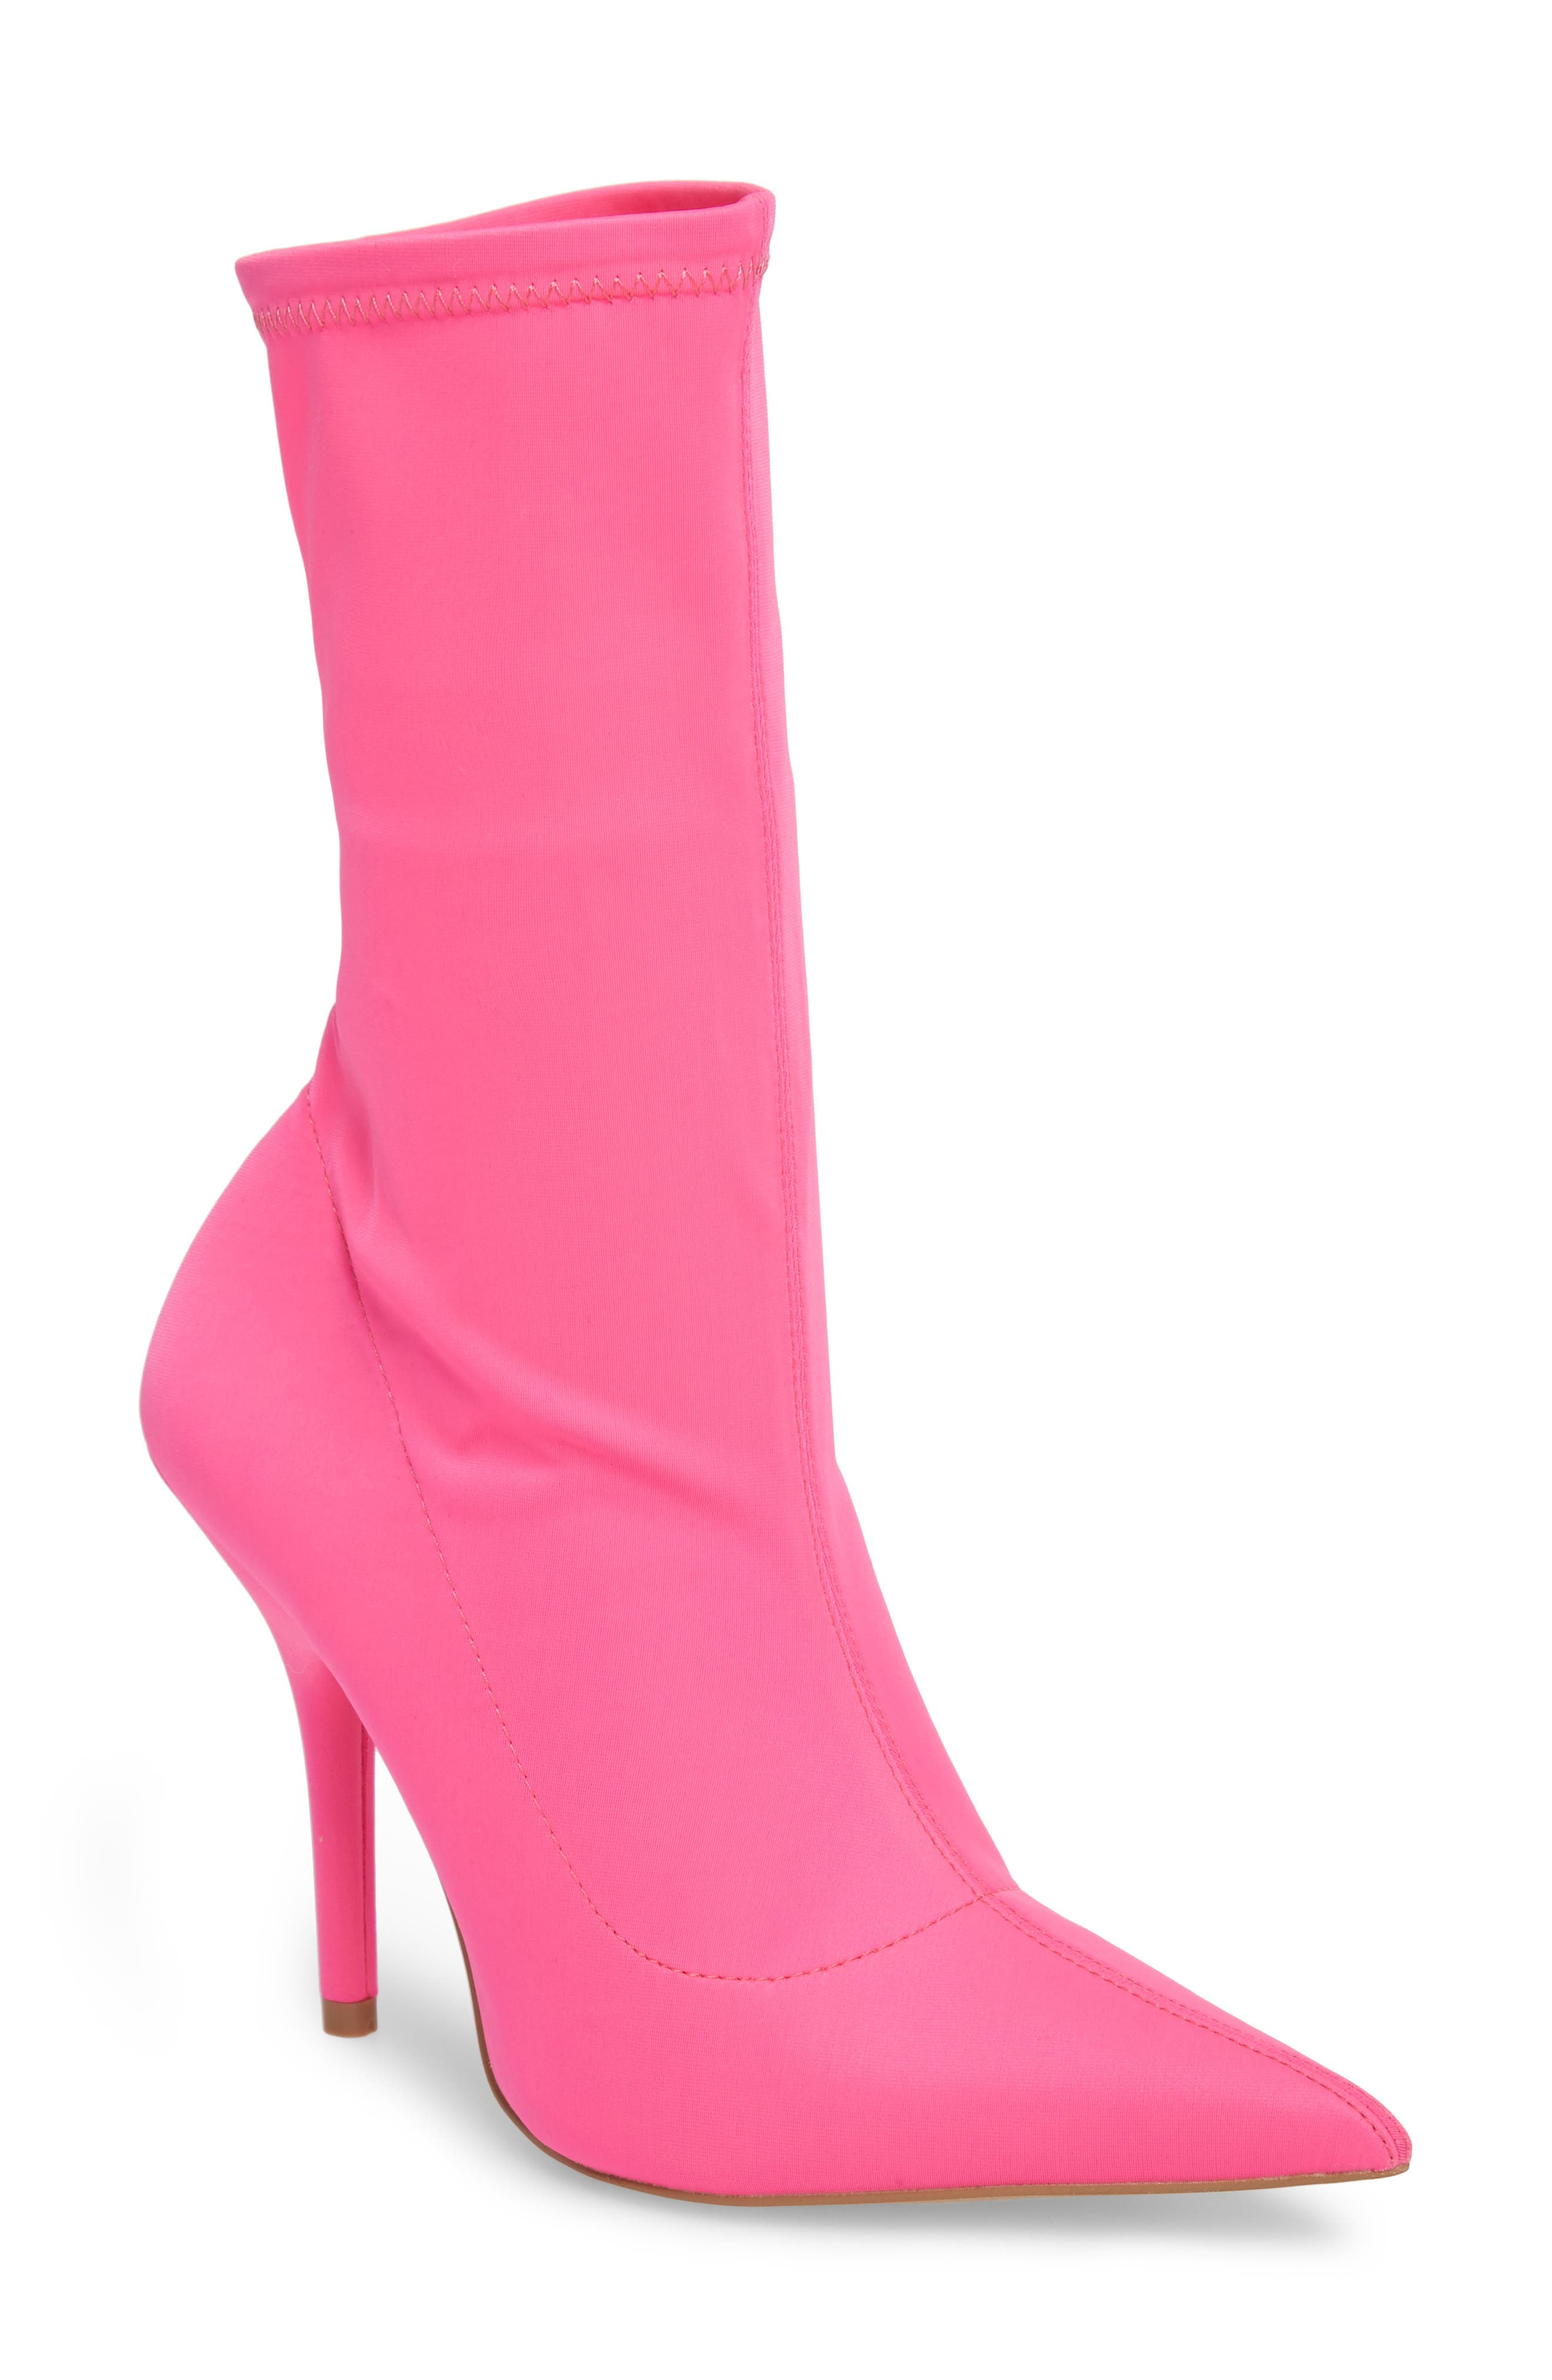 Mimi Stretch Bootie,                         Main,                         color, Pink Faux Leather